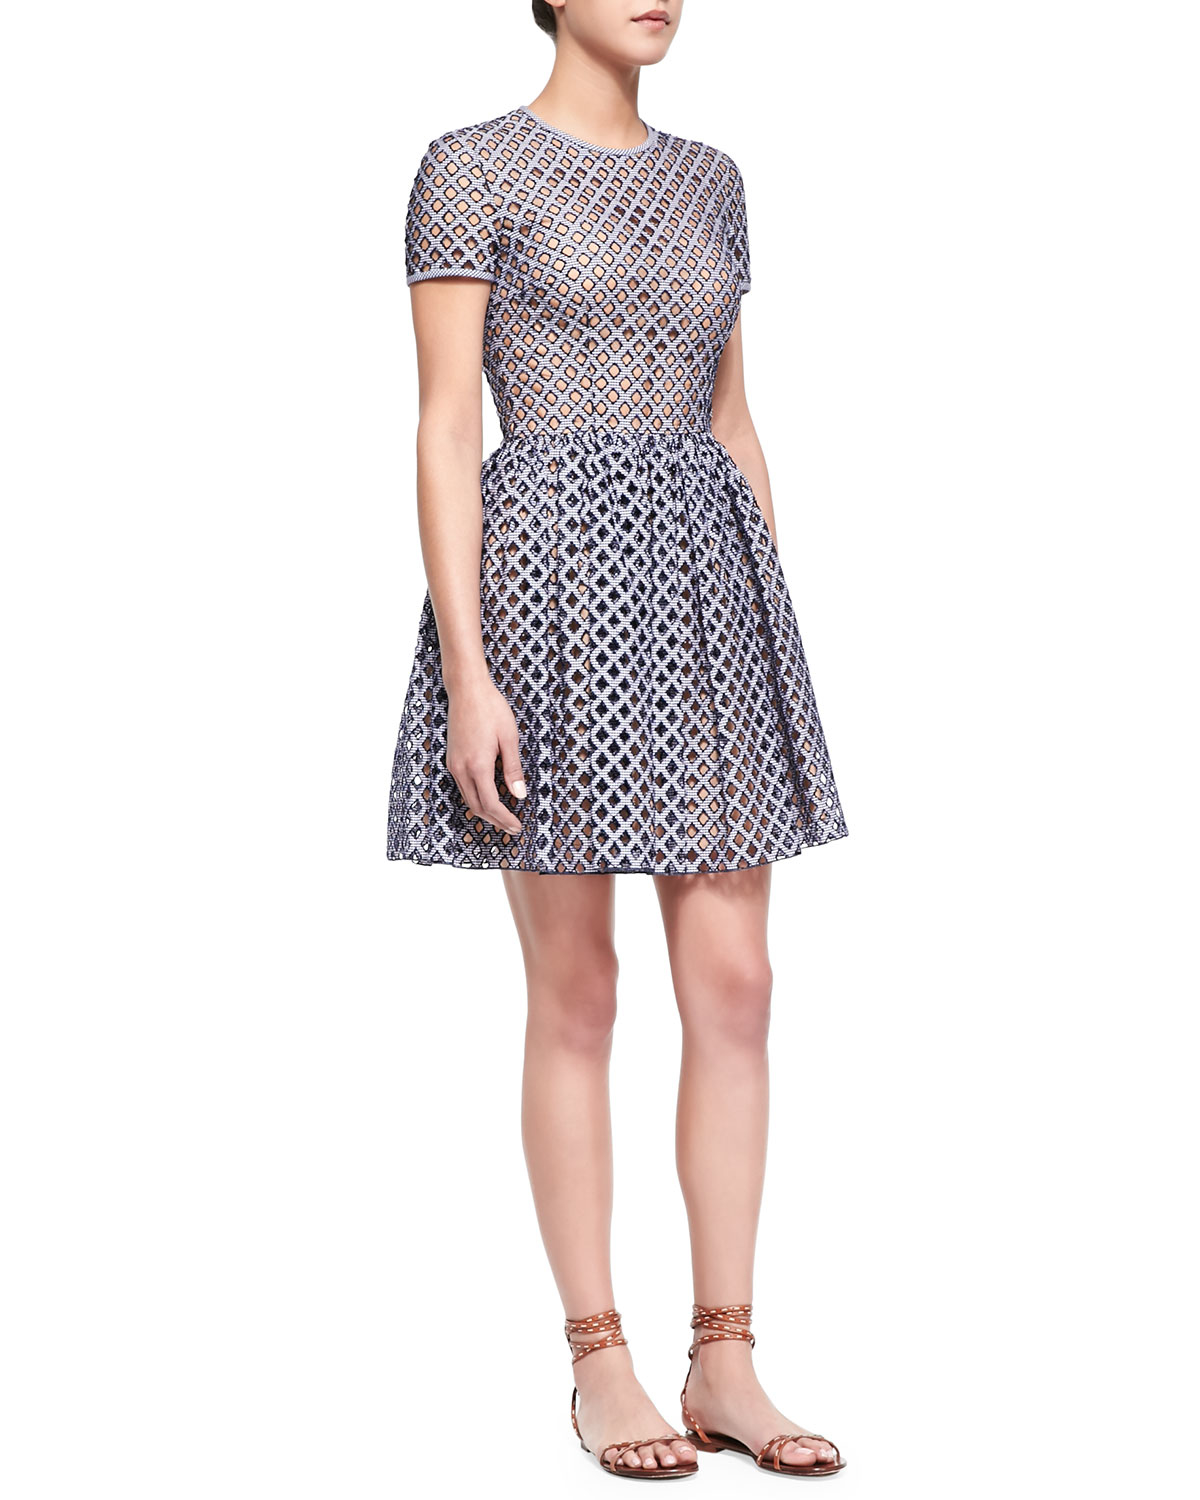 Michael kors Lattice Gingham Fit and flare Dress in Blue